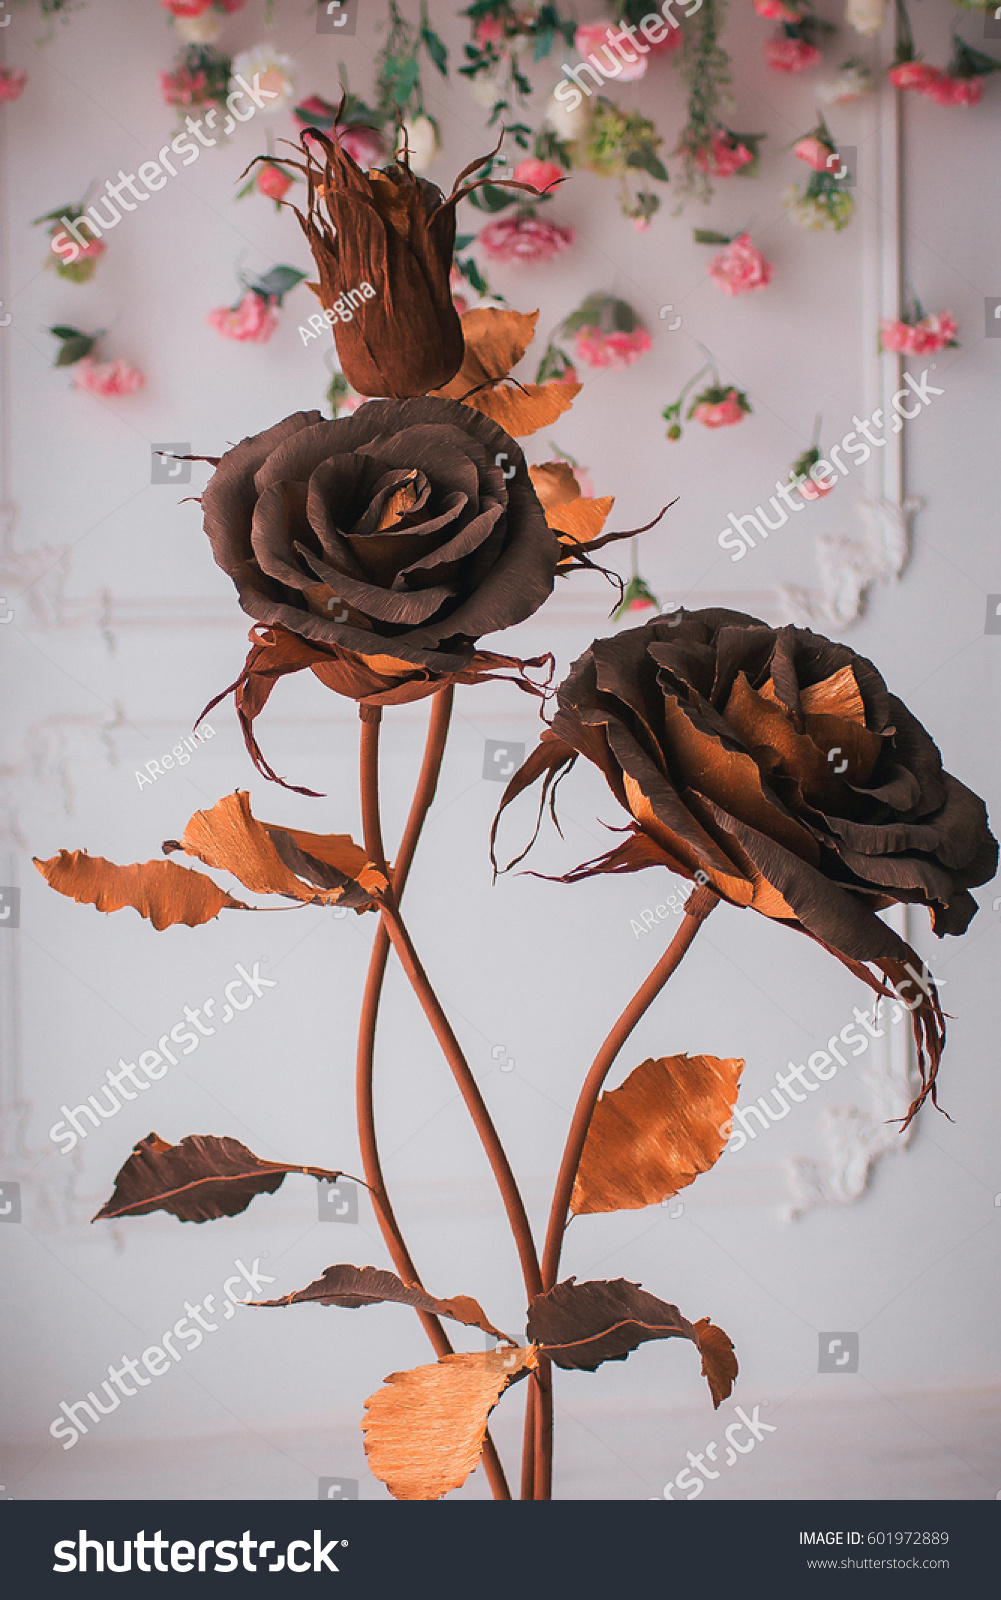 Huge Paper Flower Gold Brown Color Stock Photo Edit Now 601972889